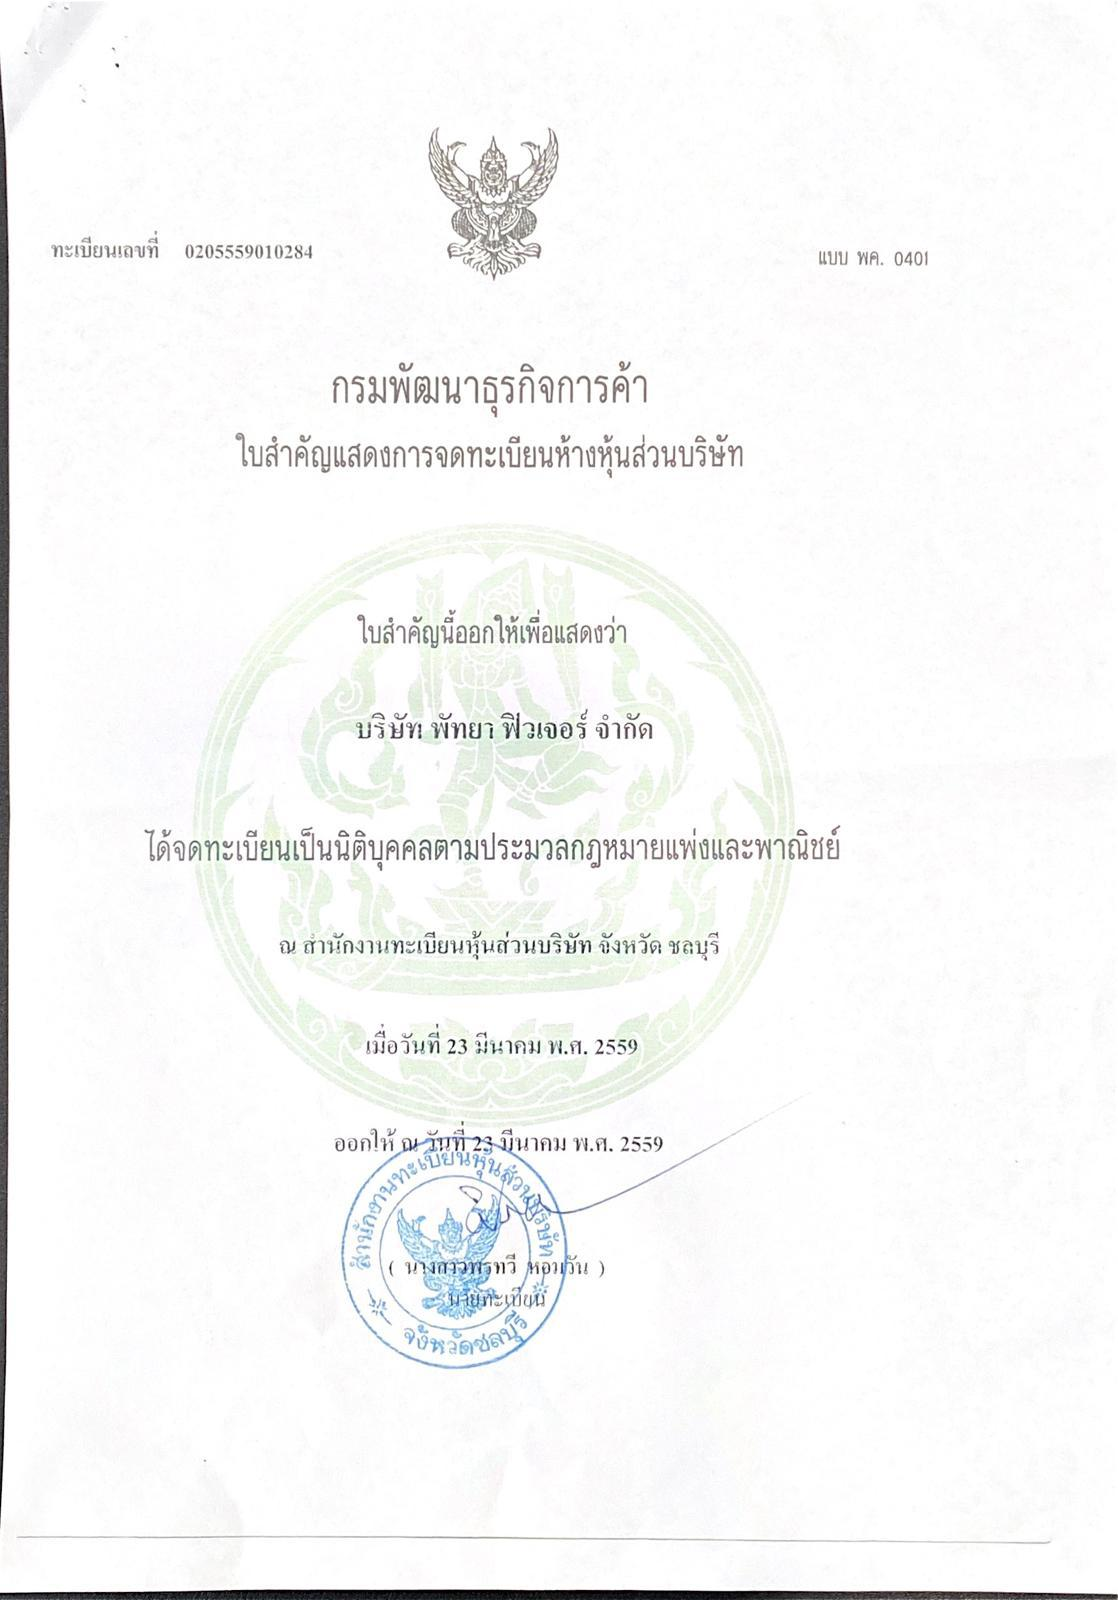 Property Company License